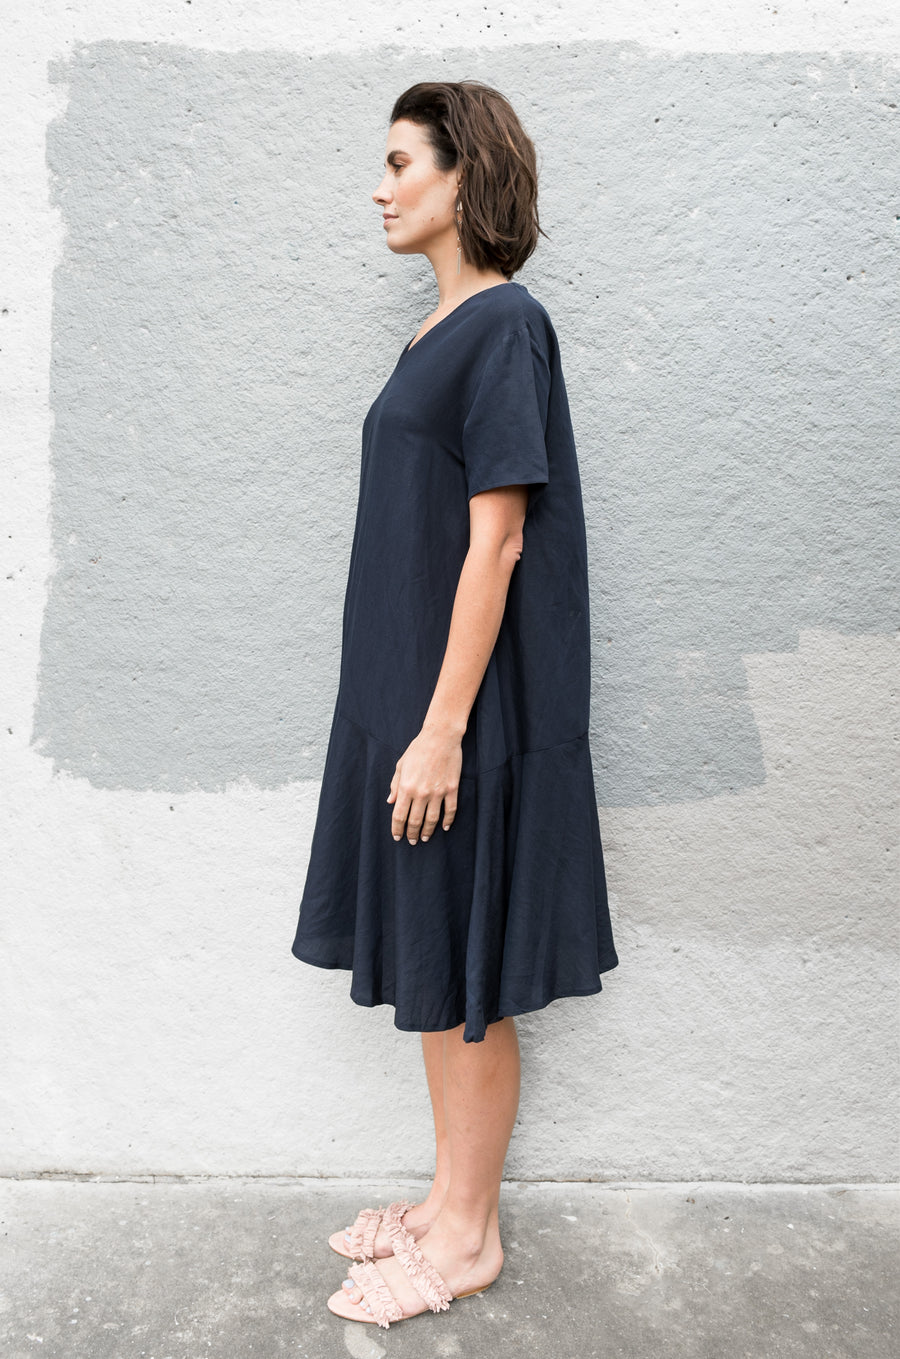 Huqin Dress in Navy